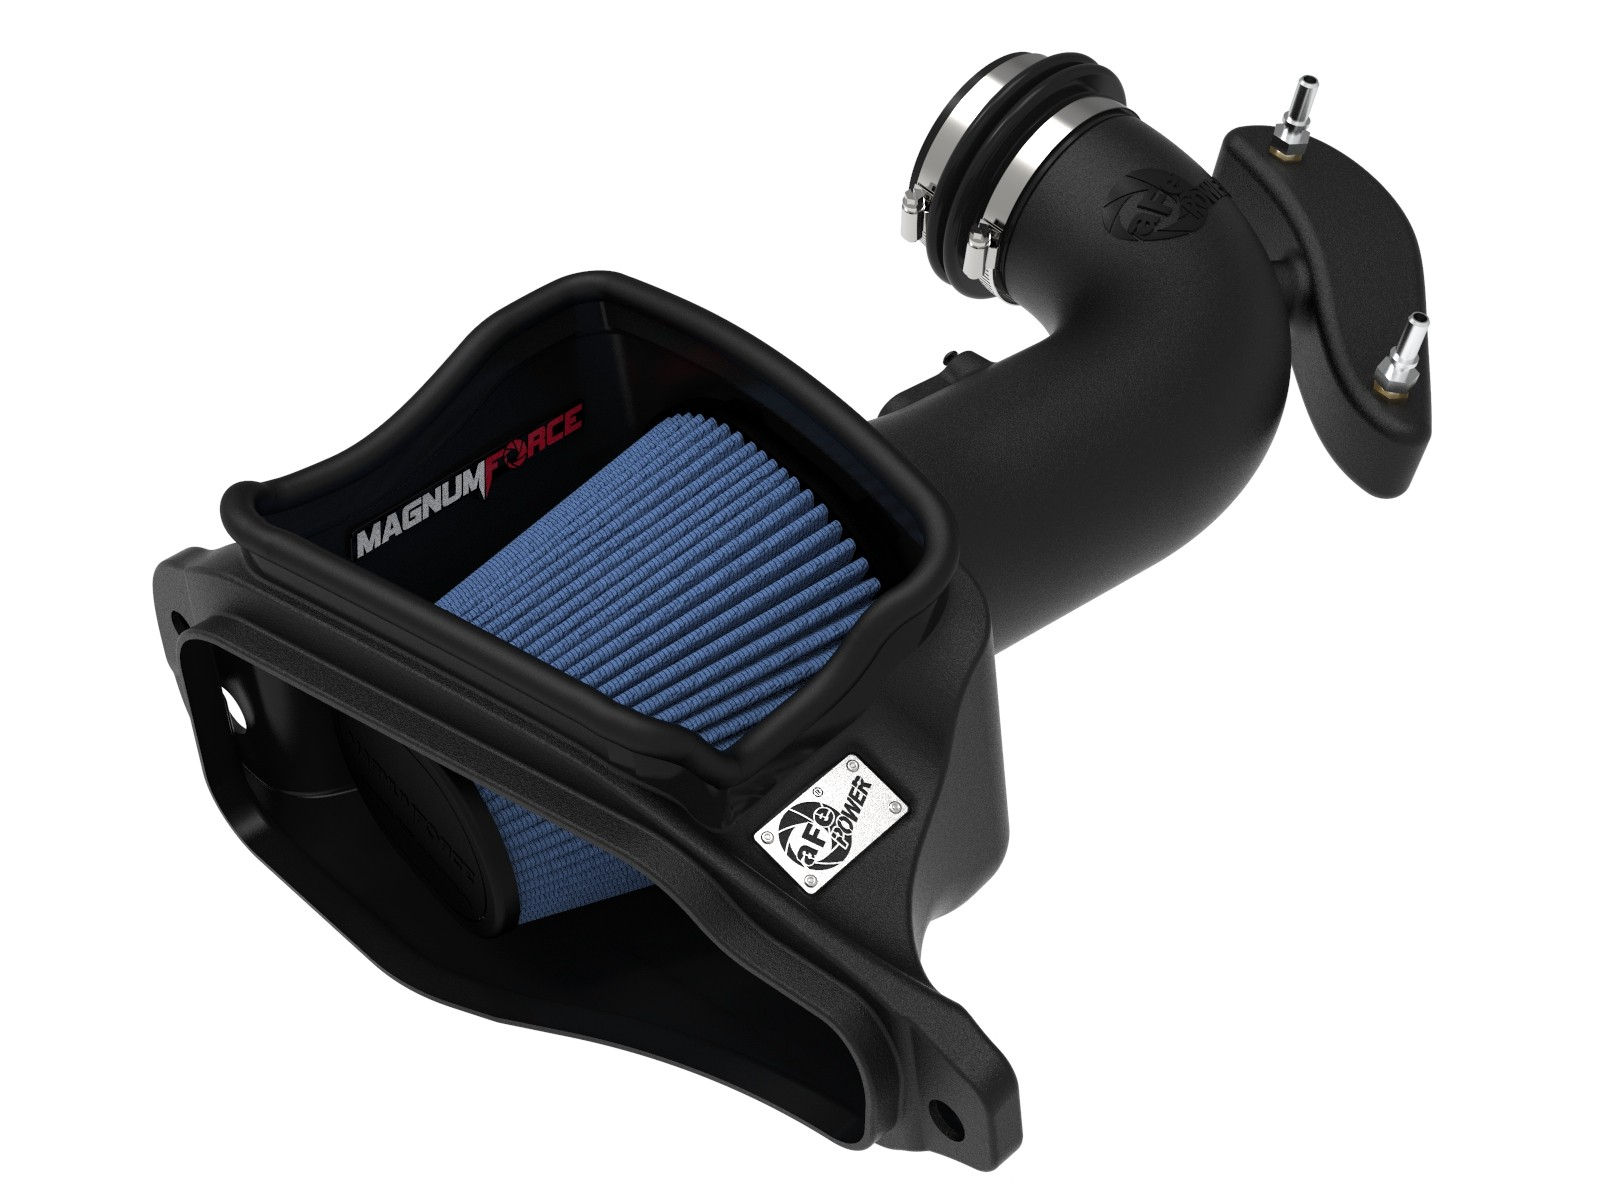 2014-2019 C7 Corvette aFe Power Magnum FORCE Stage-2 Pro 5R Cold Air Intake System